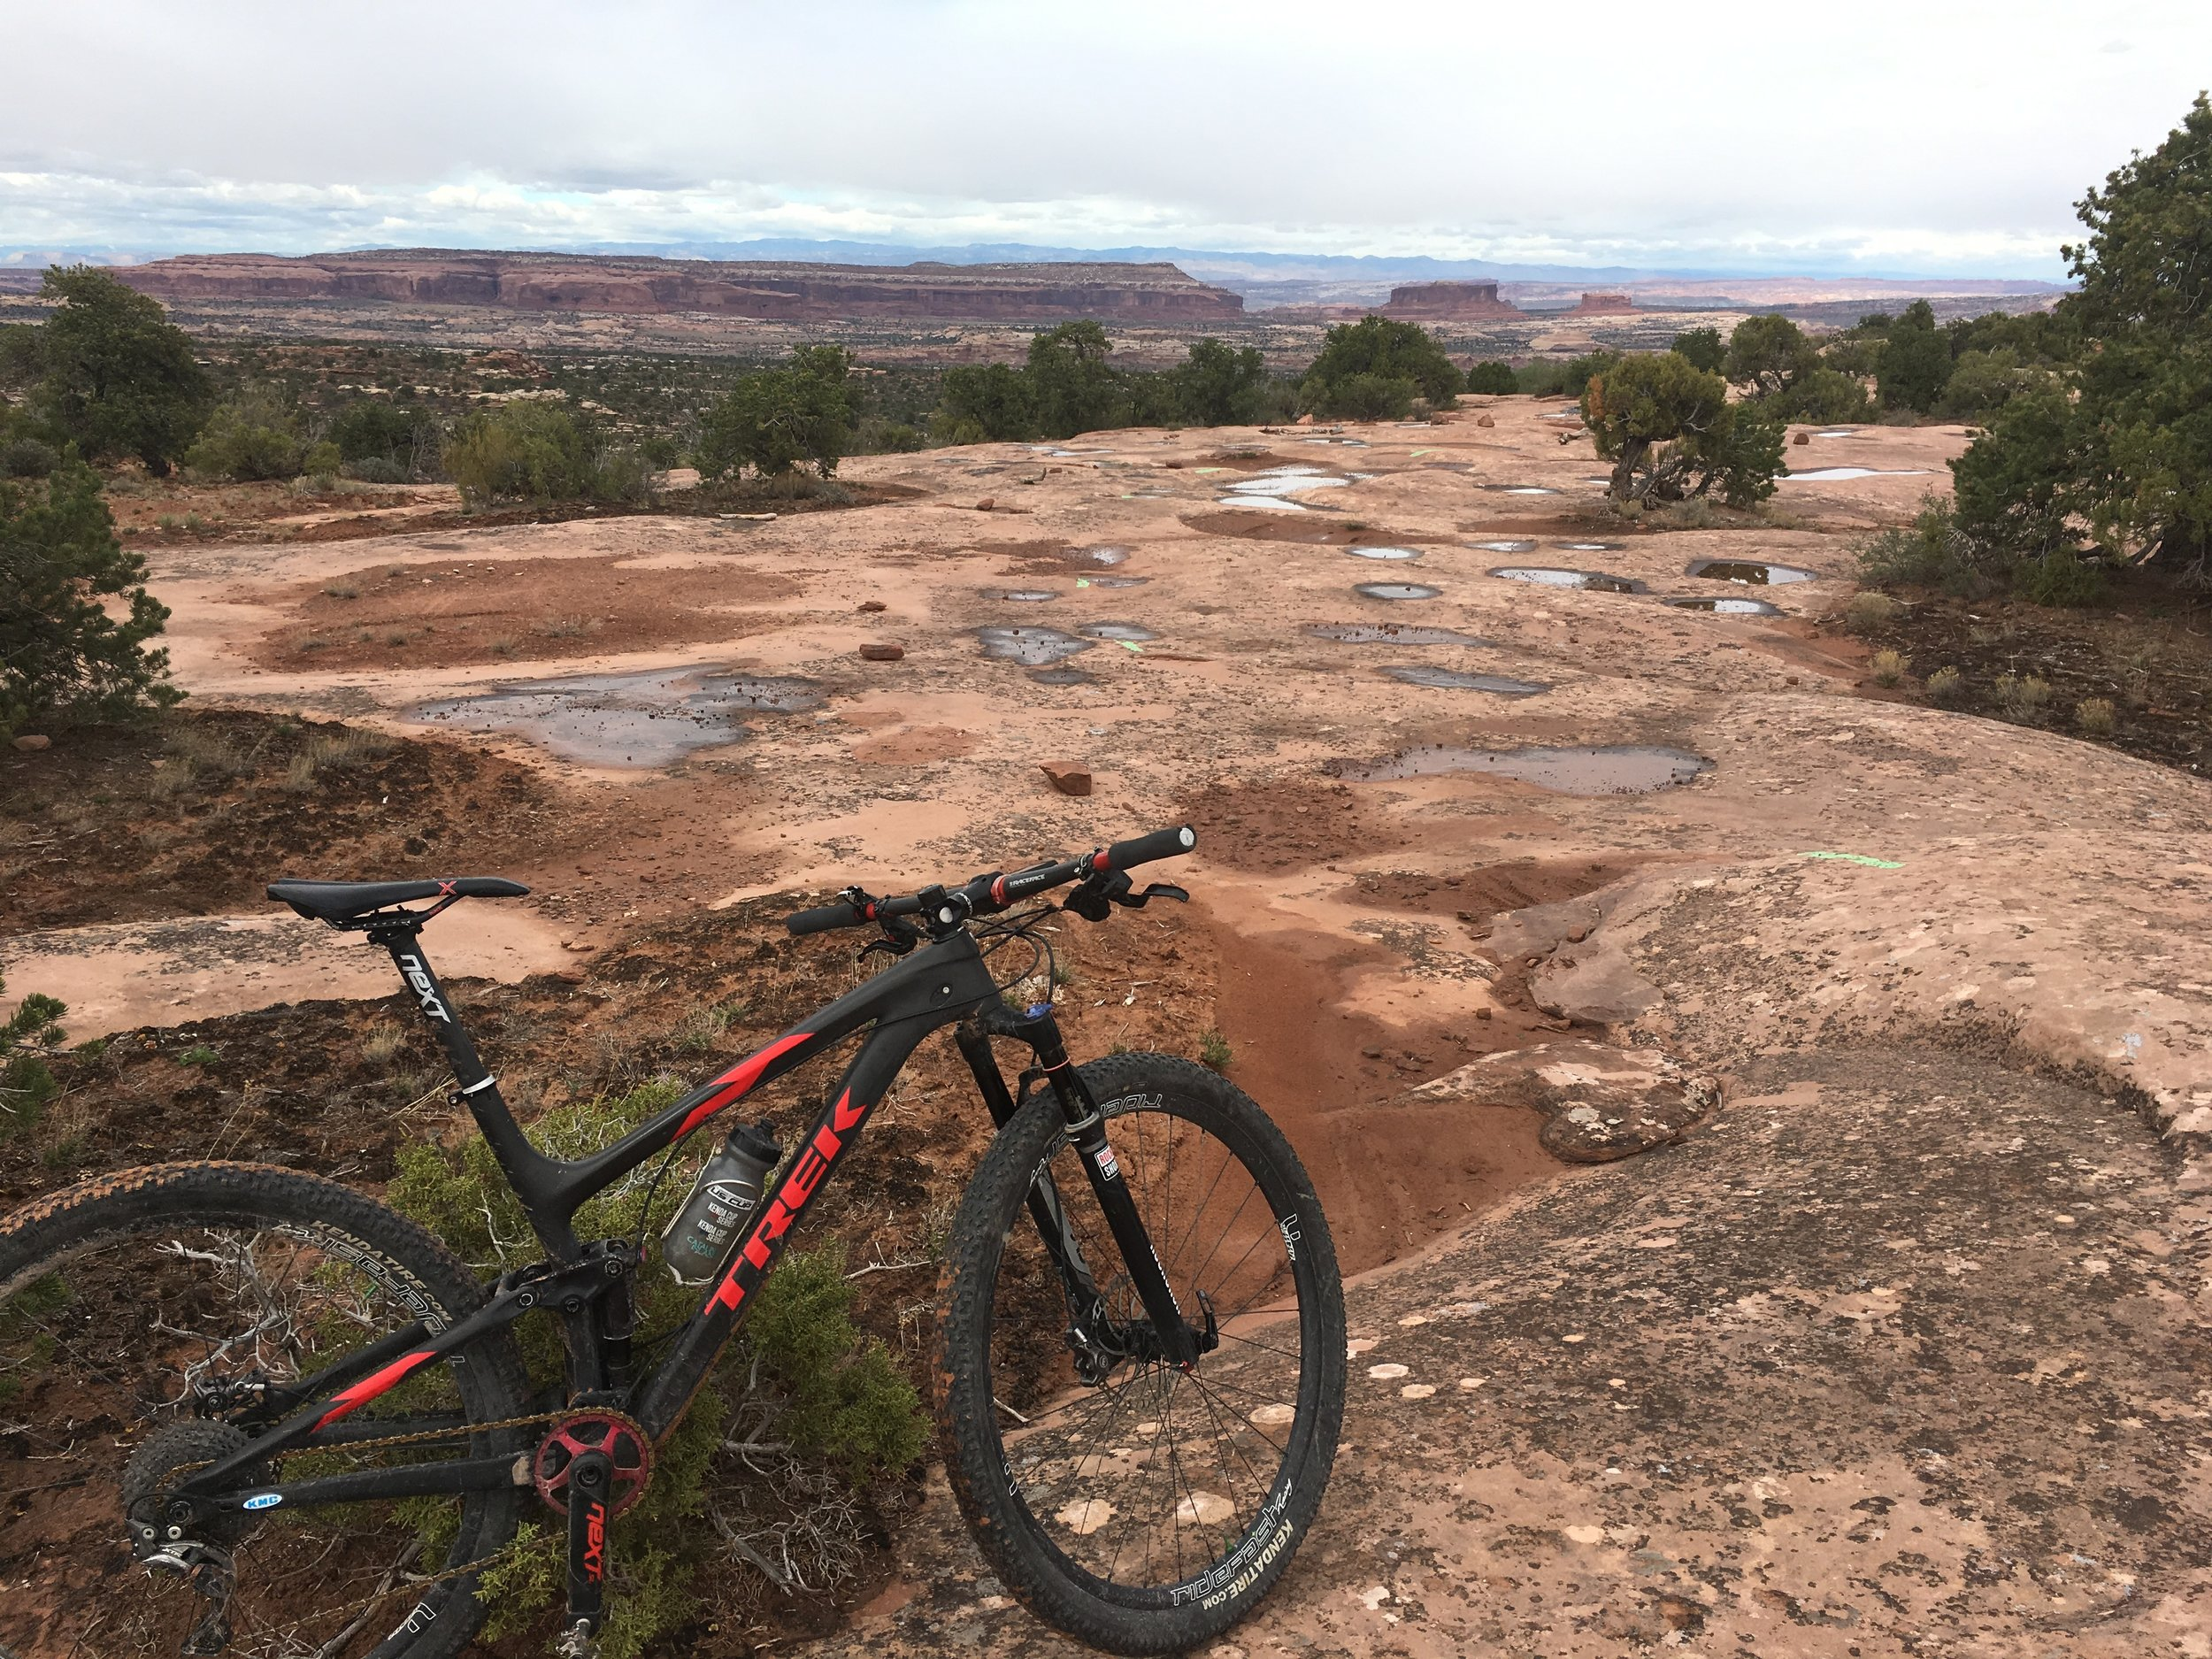 Moab was drier